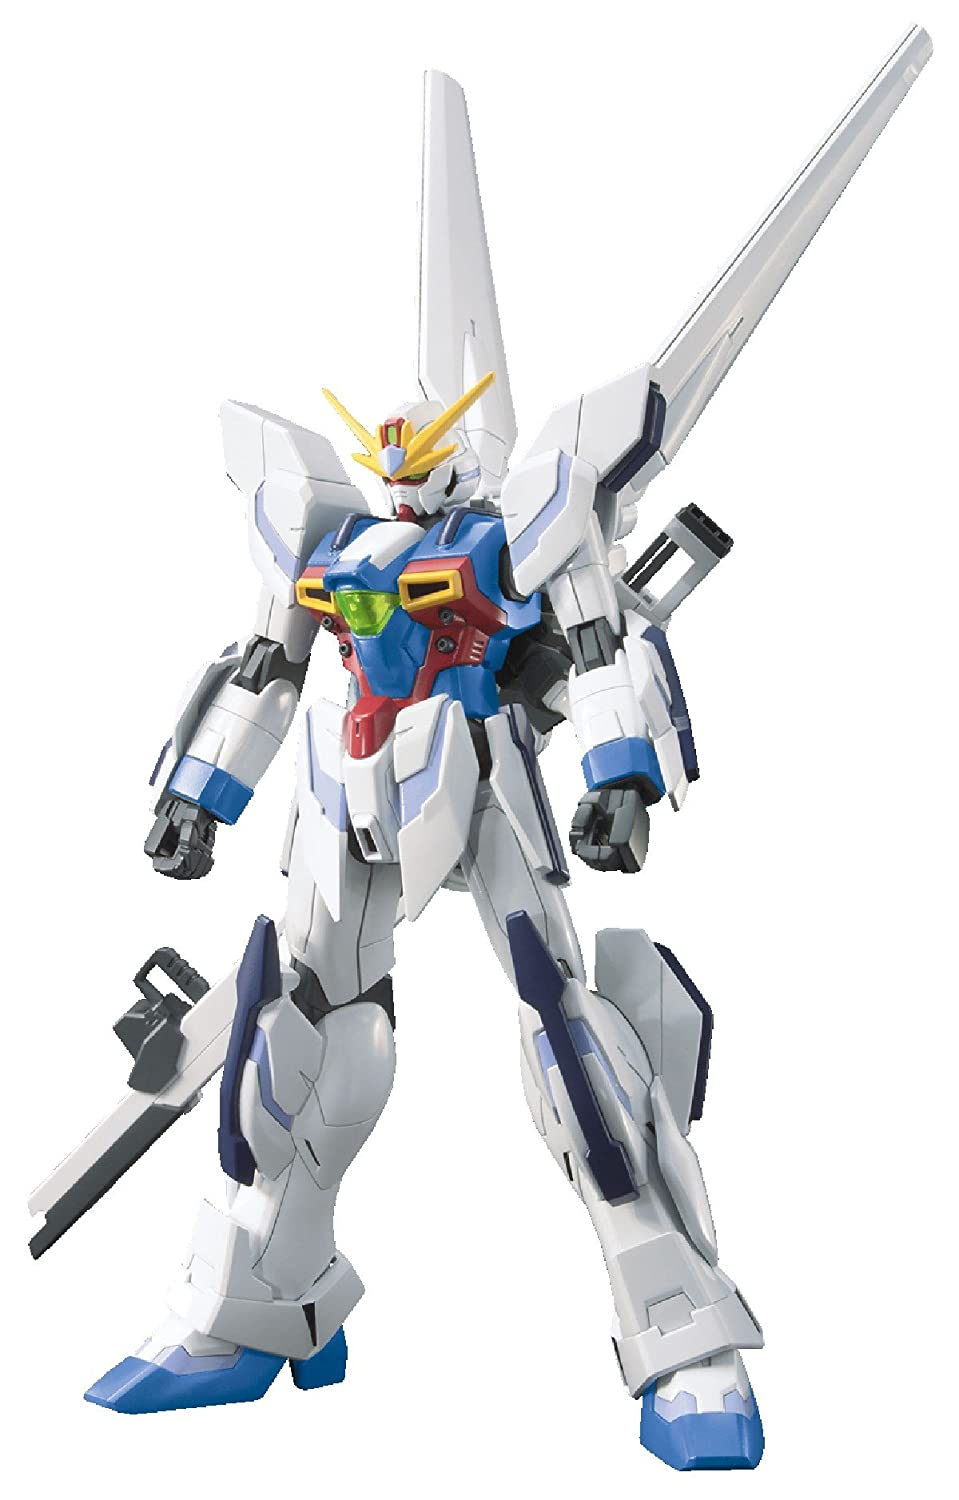 Bandai Hobby #03 HGBF Gundam X Maoh Model Kit (1/144 Scale) 14dbi 1 2g yagi antenna 1180 1220mhz 1 2ghz wireless transceiver antenna yagi antenna 14 unit sma with 3m cable for fpv